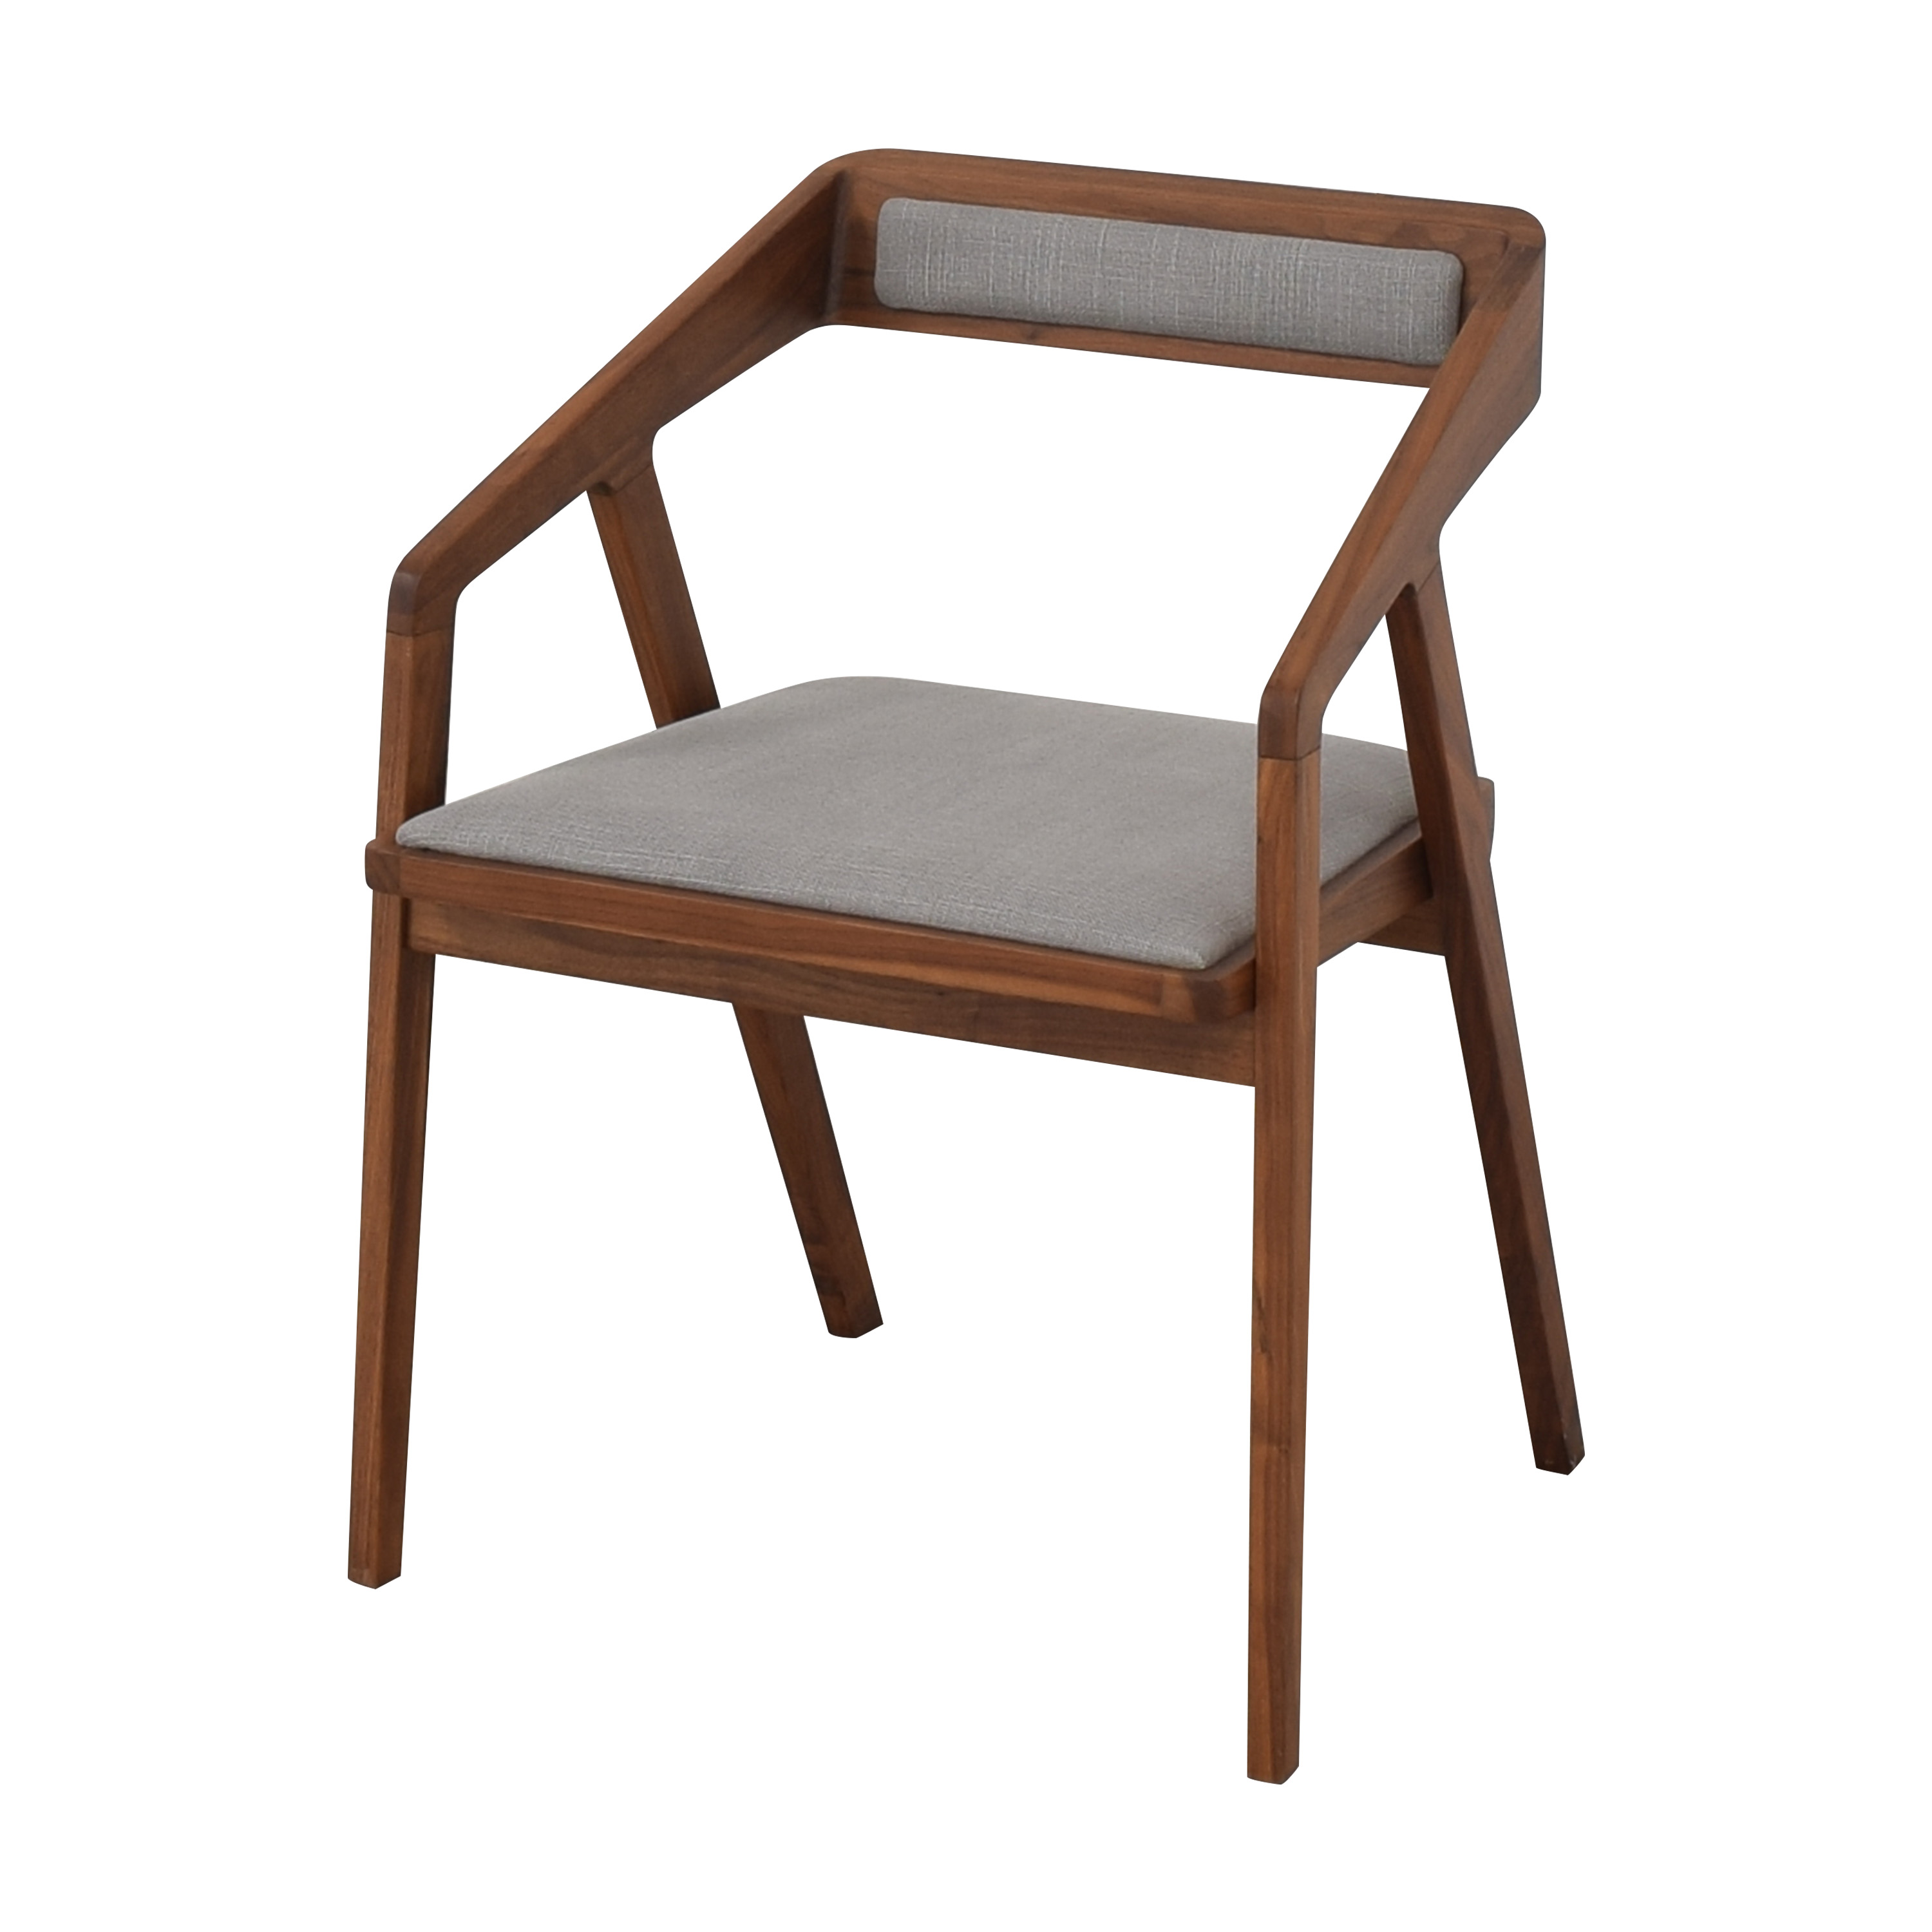 Jayson Home Jayson Home Side Chair dark brown and gray